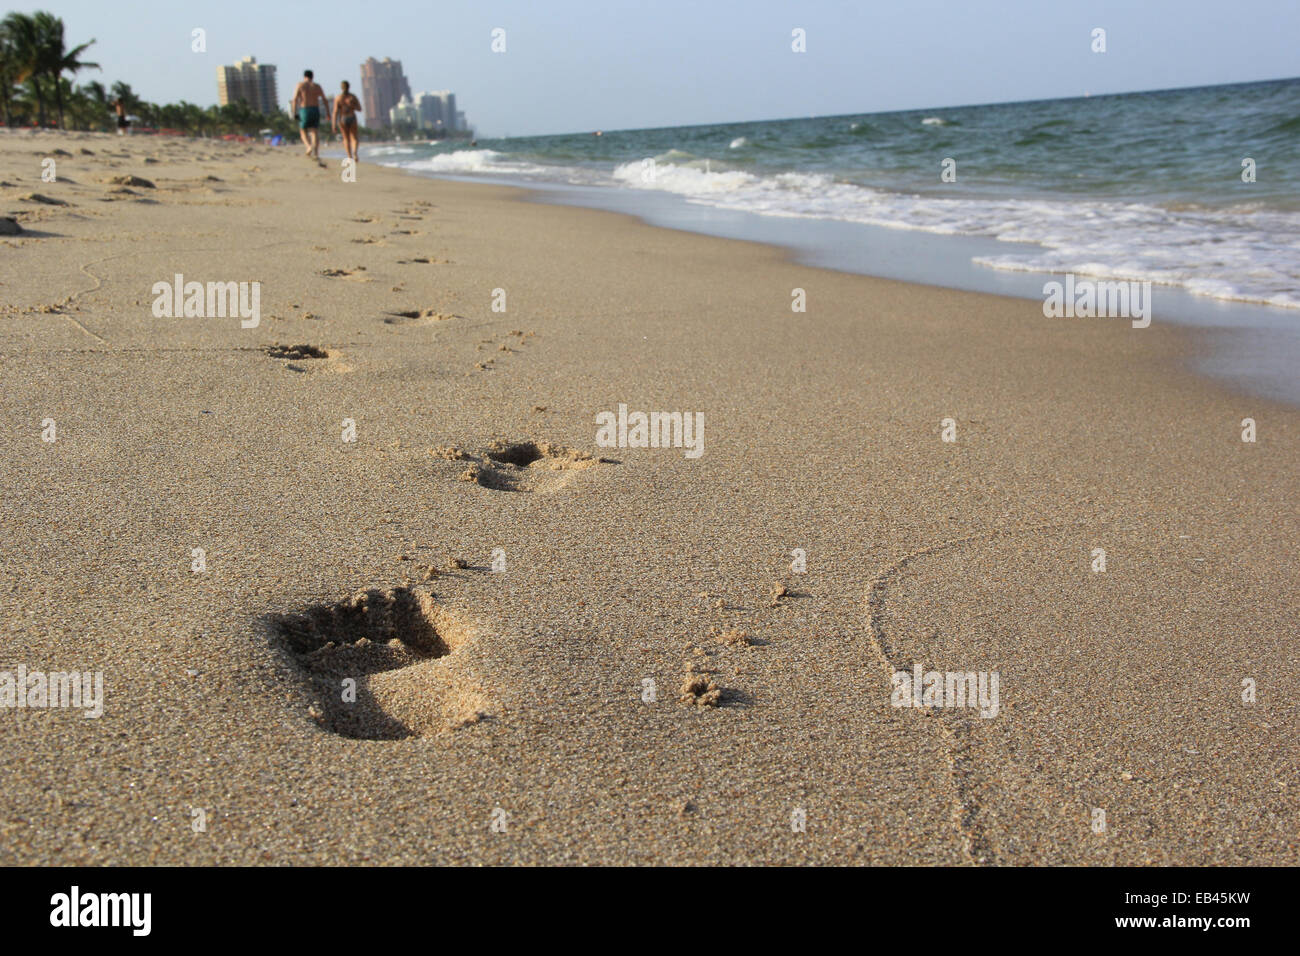 A couple walks in the beach, at Las Olas, Fort Lauderdale, Florida, United States. Stock Photo